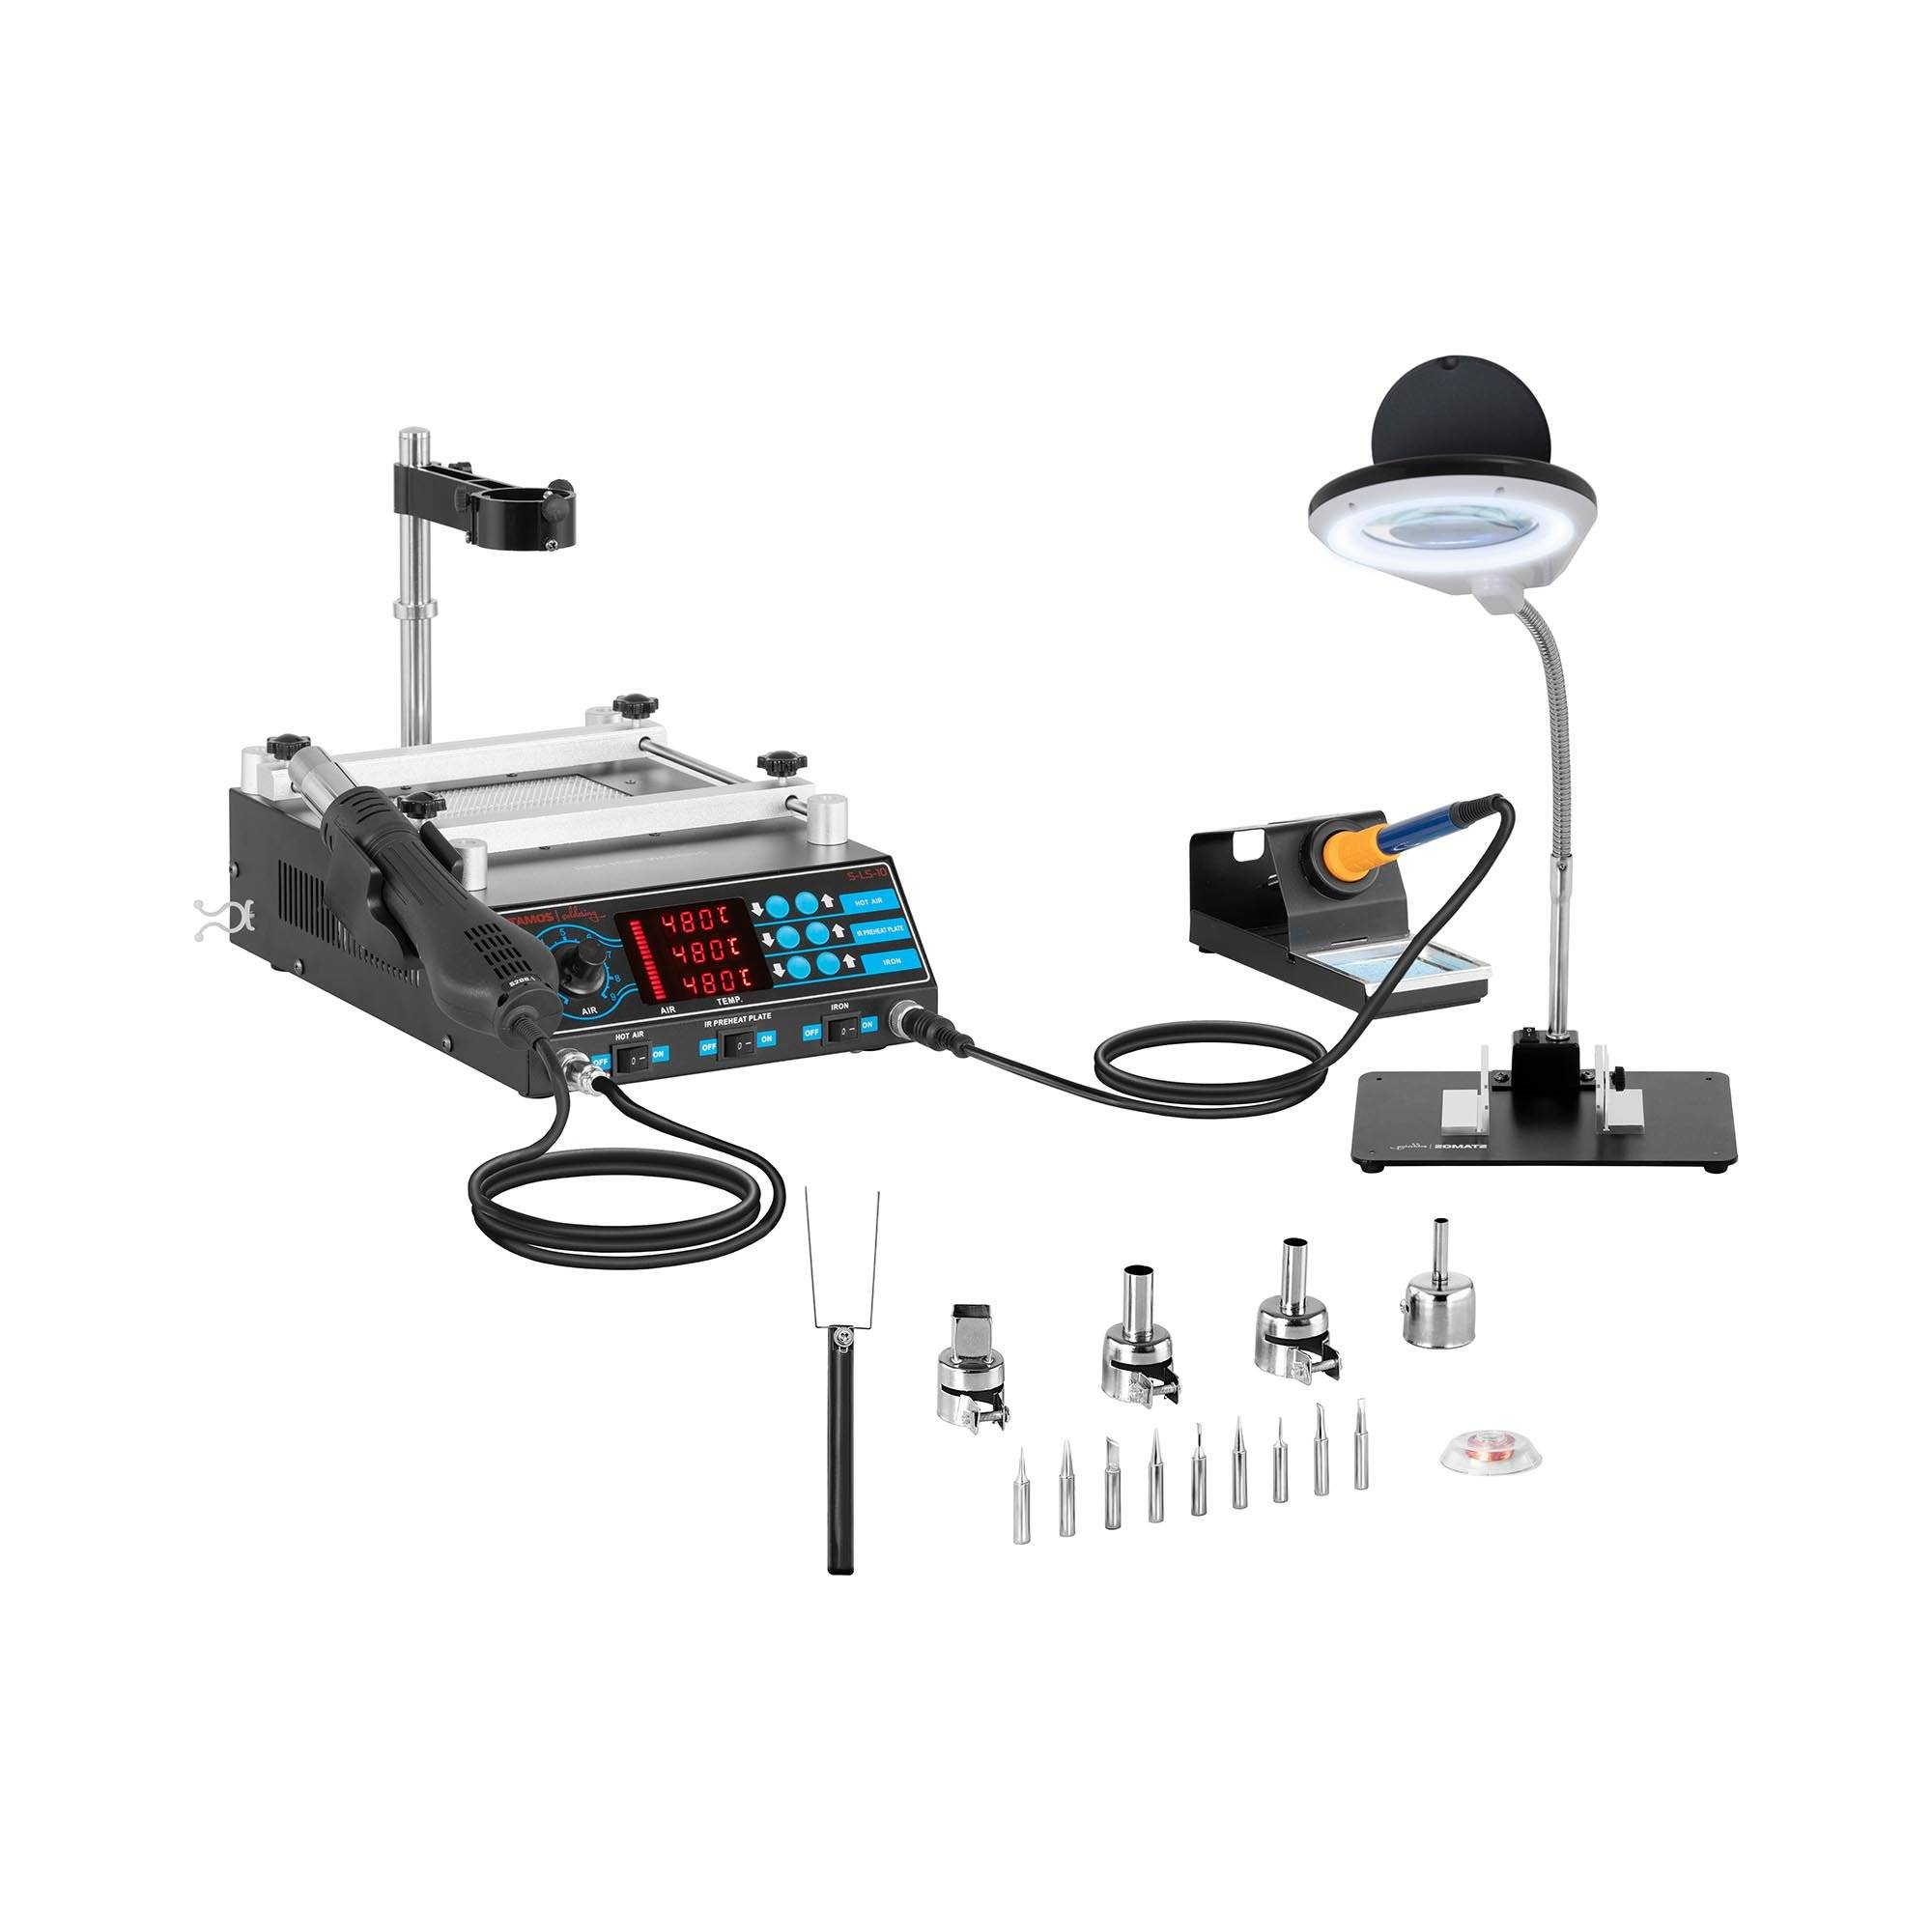 Stamos Soldering Set Soldering Station with Pre-Heating plate and 2 Clamps + Accessoires